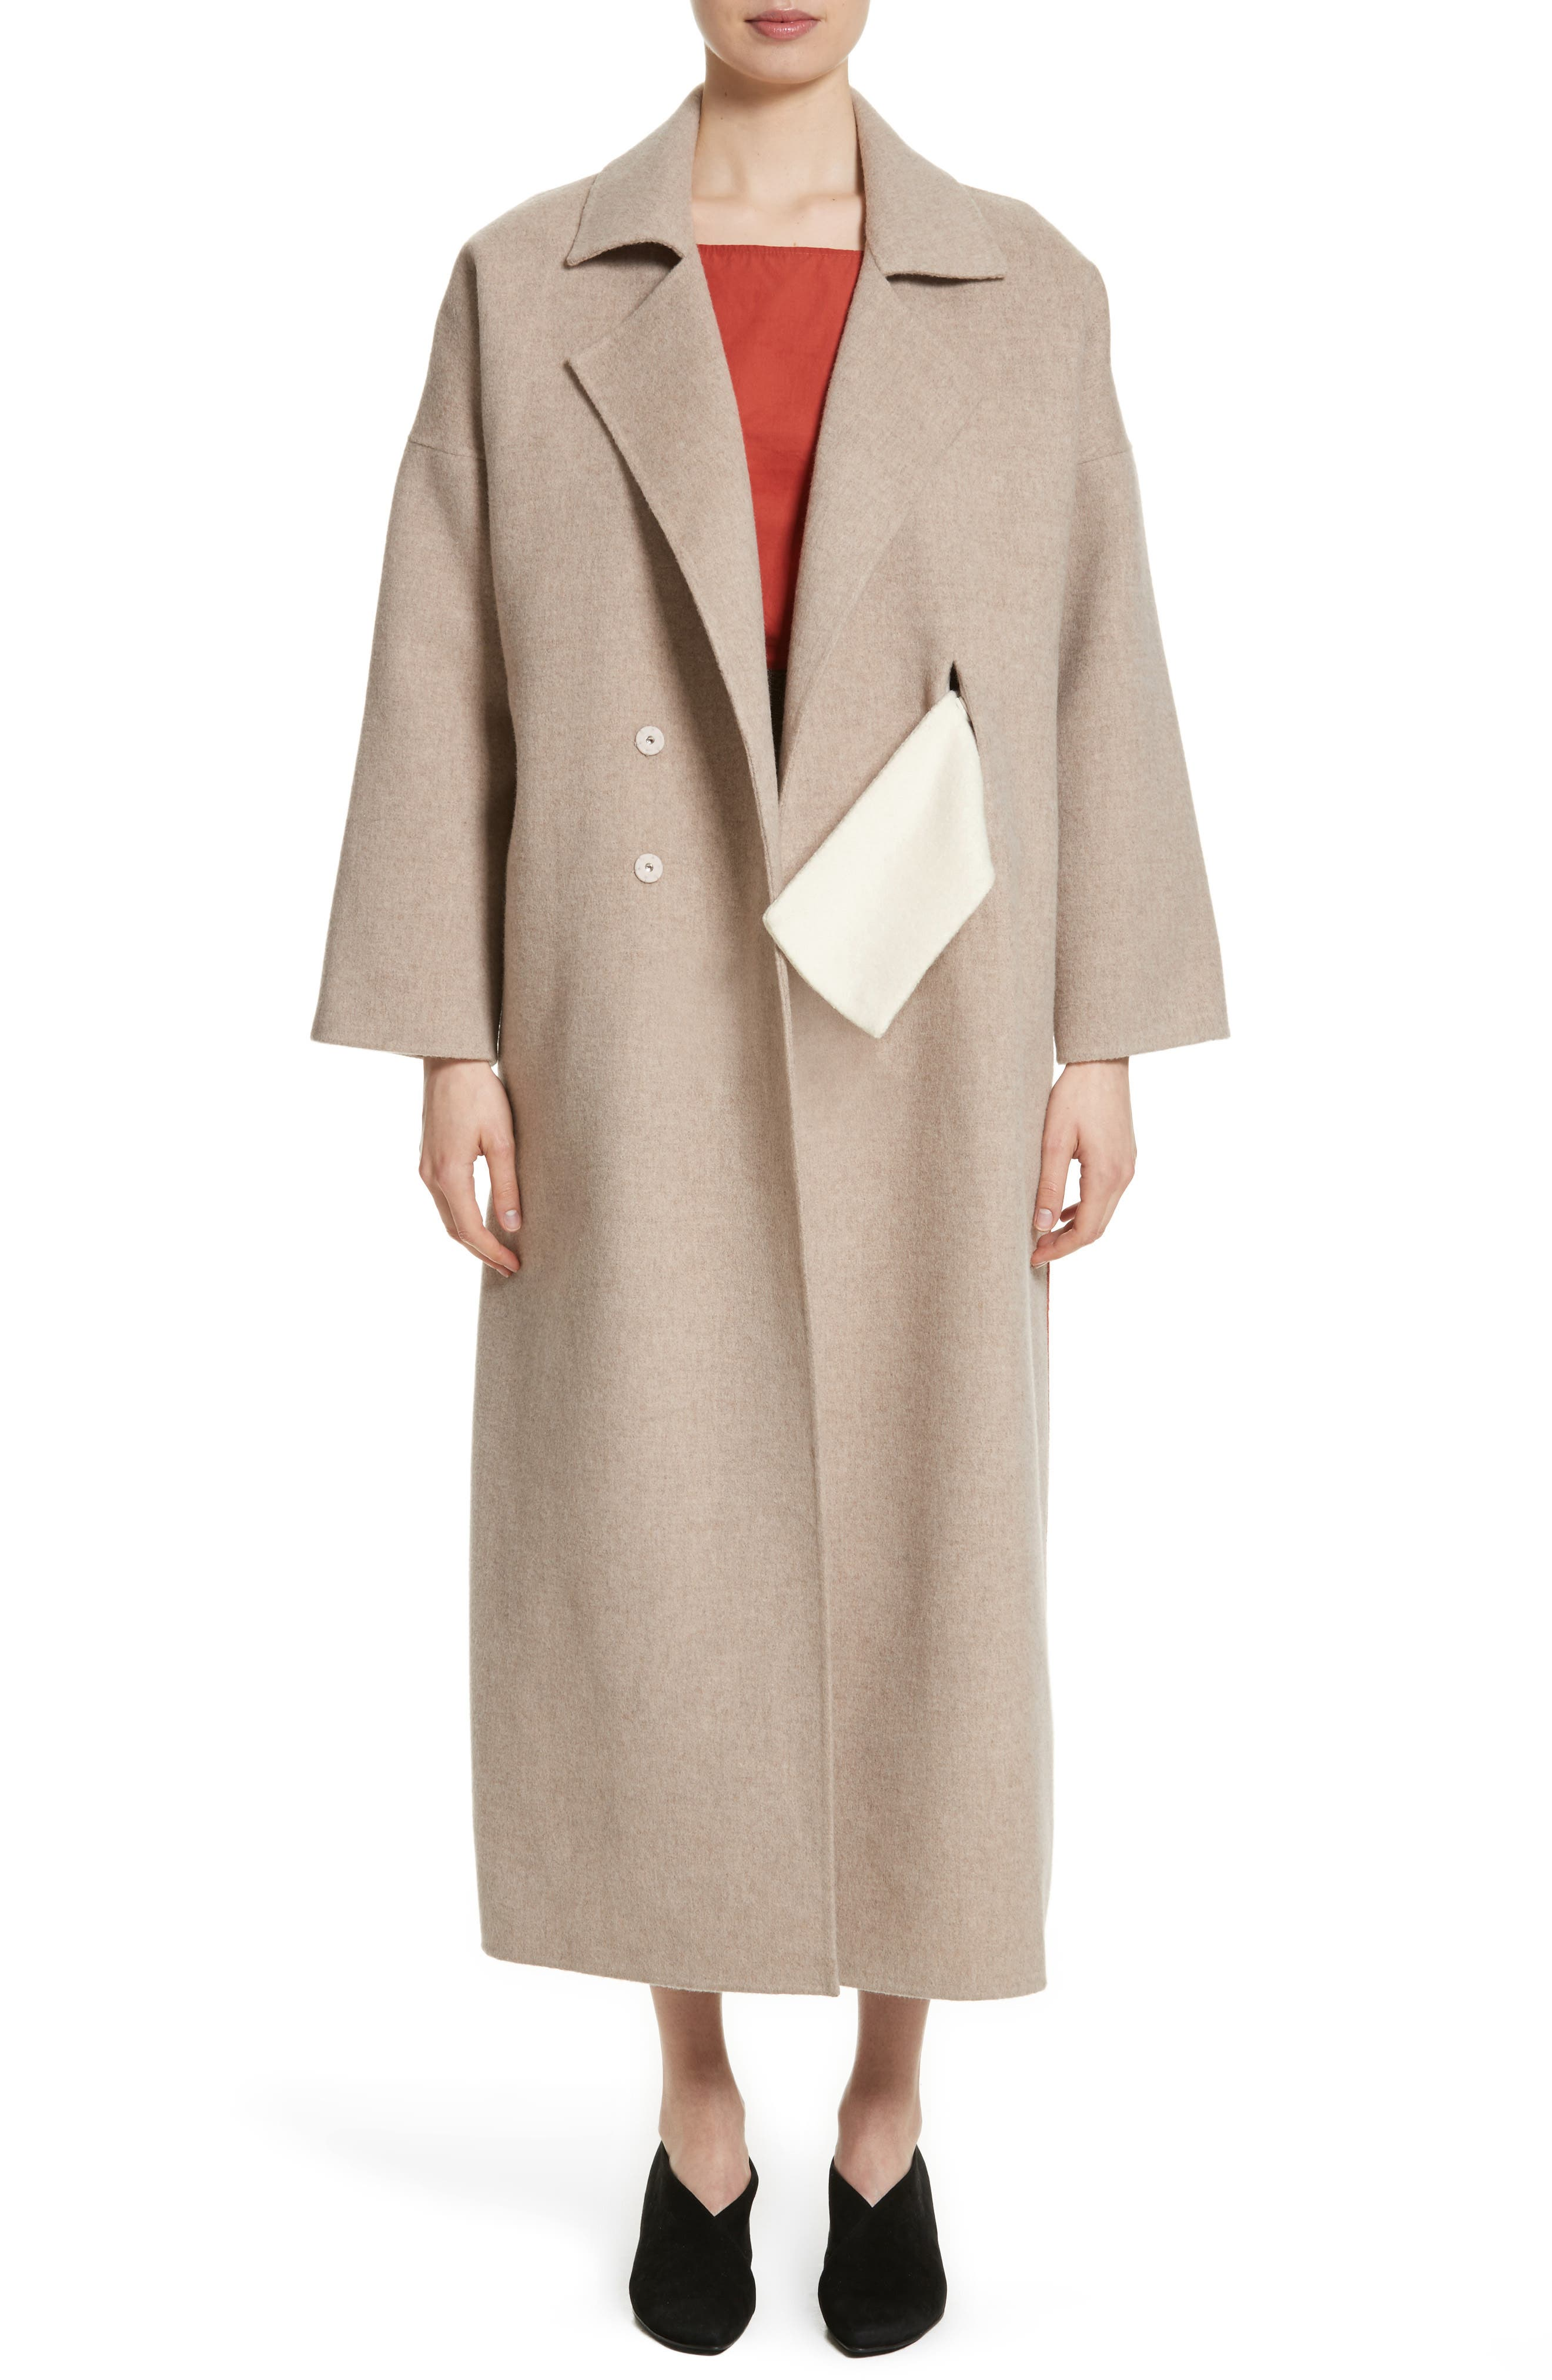 Kate Oversize Belted Coat,                         Main,                         color, Oat And Brick